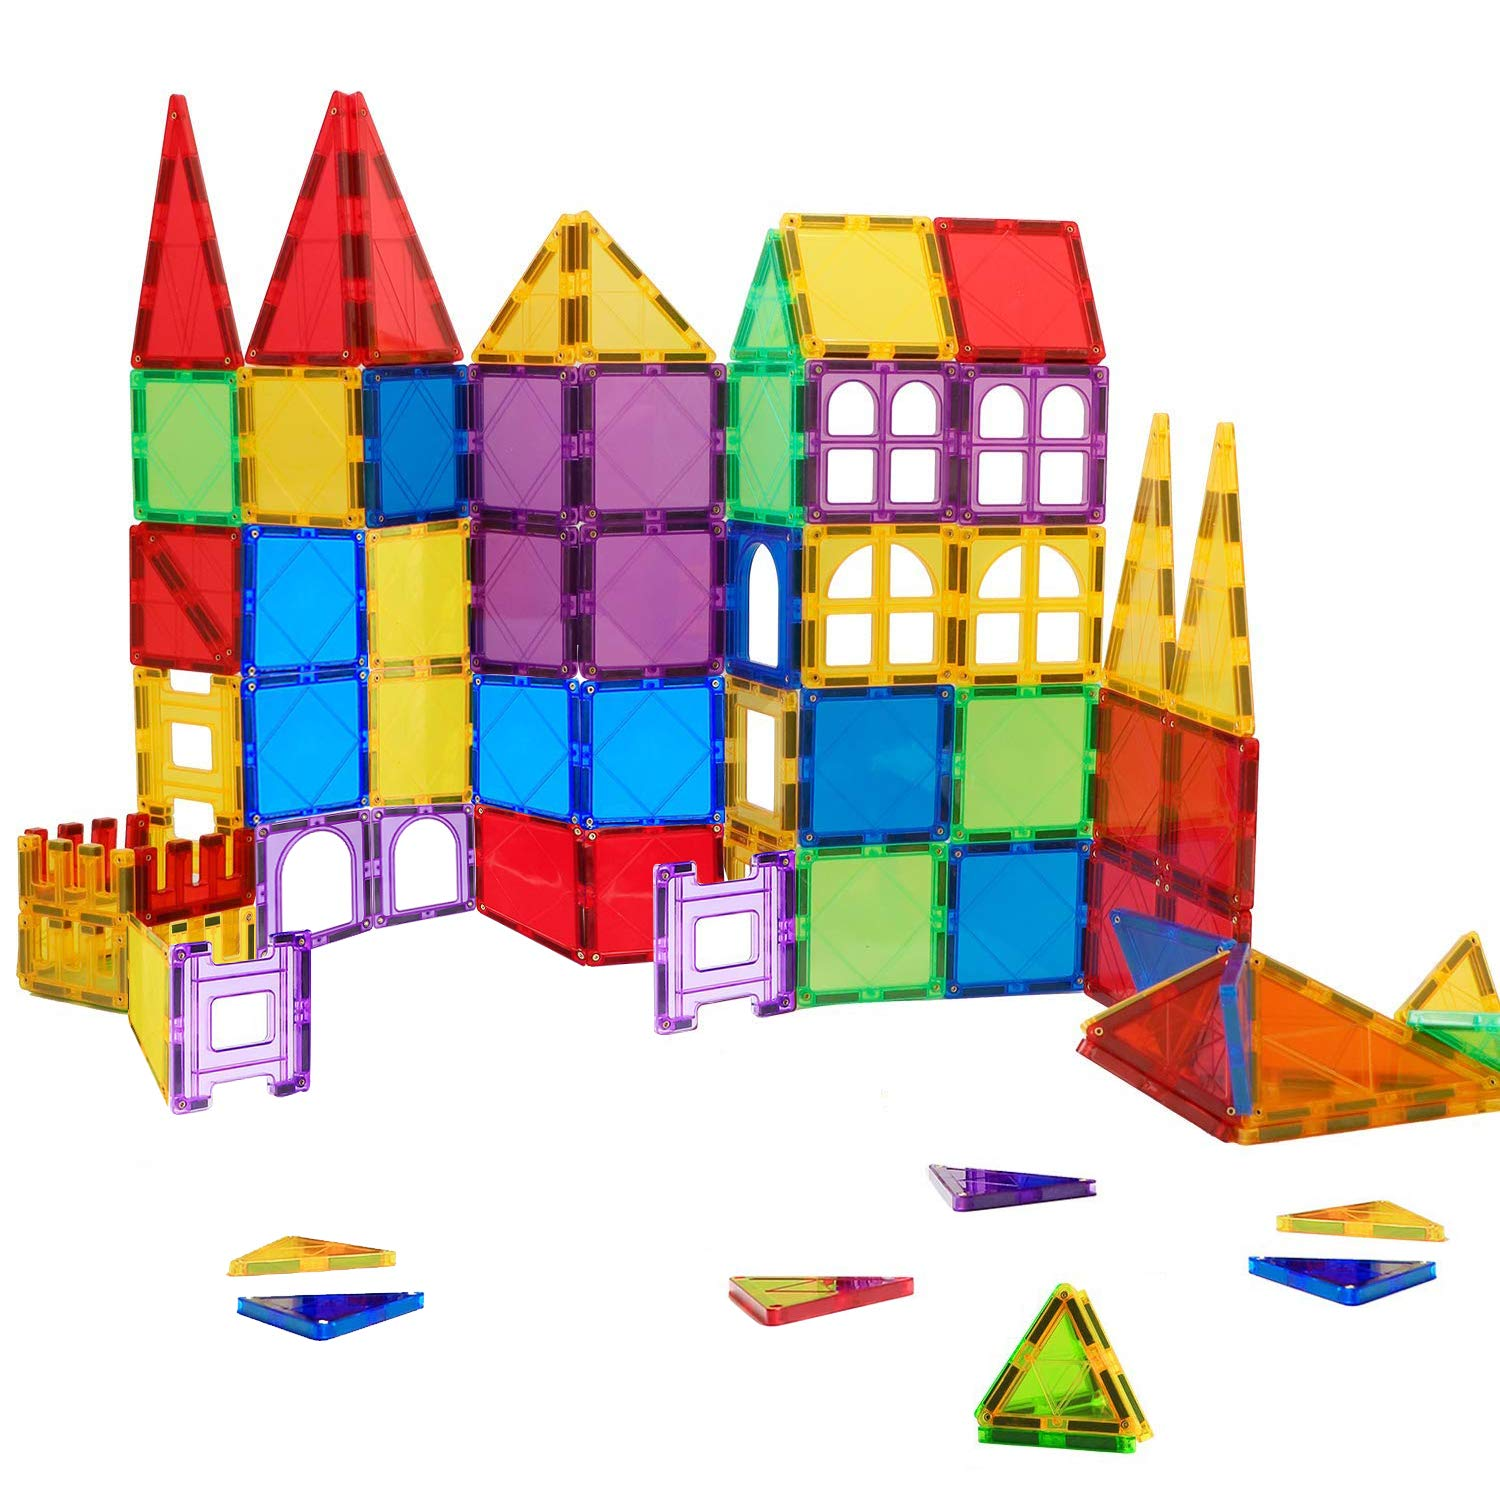 Gifts2U Magnetic Blocks, 72 Pcs Magnet Building Tiles Educational Toys 3D Magnet Building Blocks Set Magnetic Tile Suitable for Kids Classroom Toddler Girl by Gifts2U